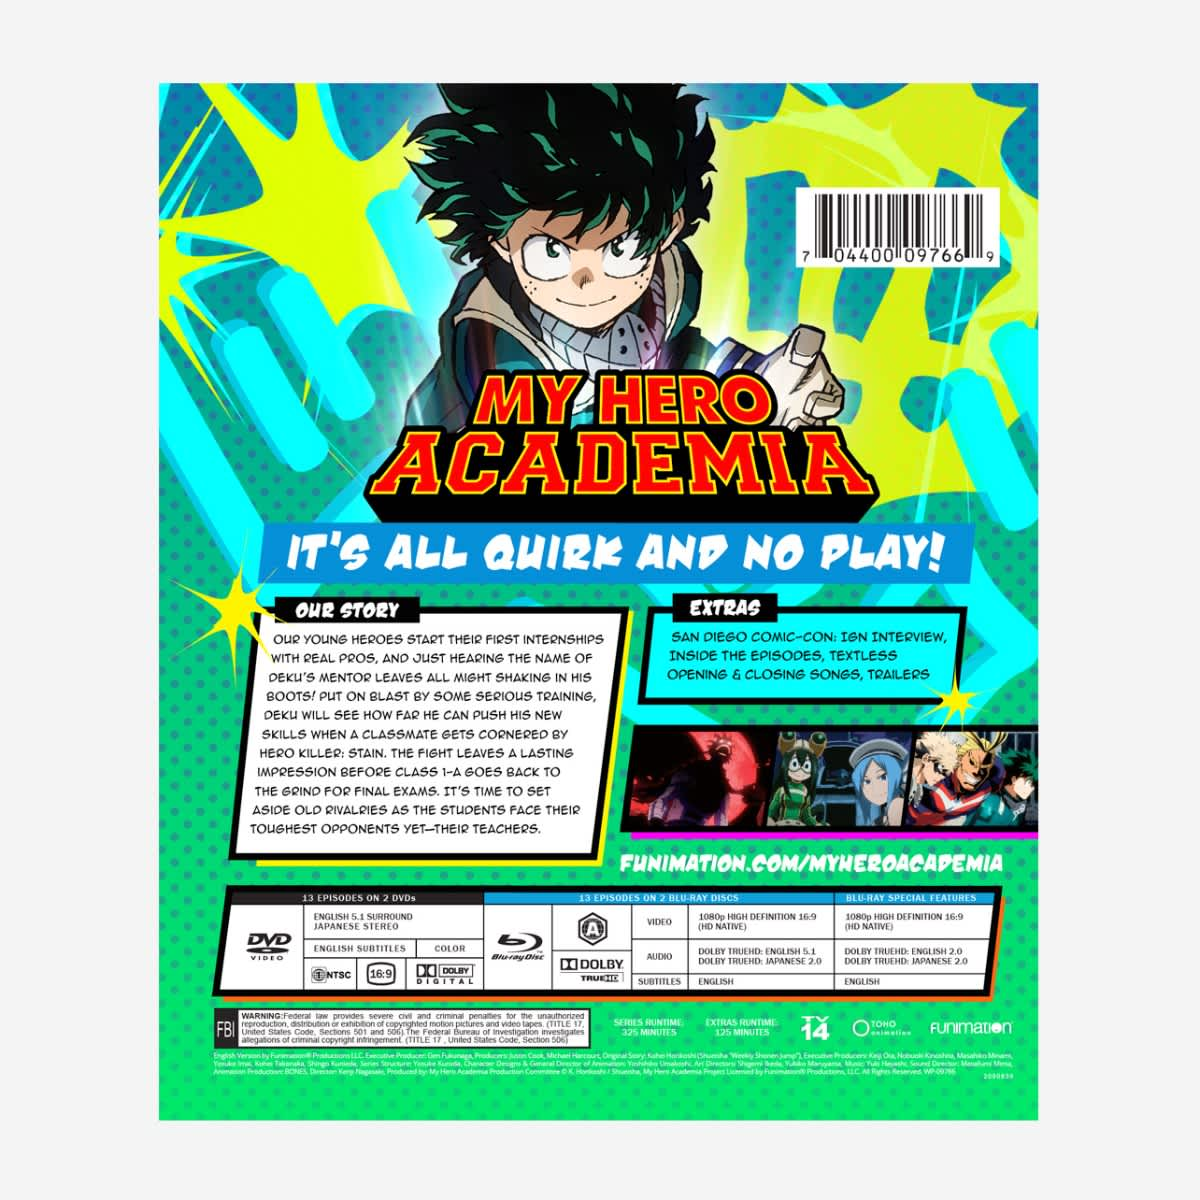 My Hero Academia Season 2 Part 2 Blu-ray/DVD